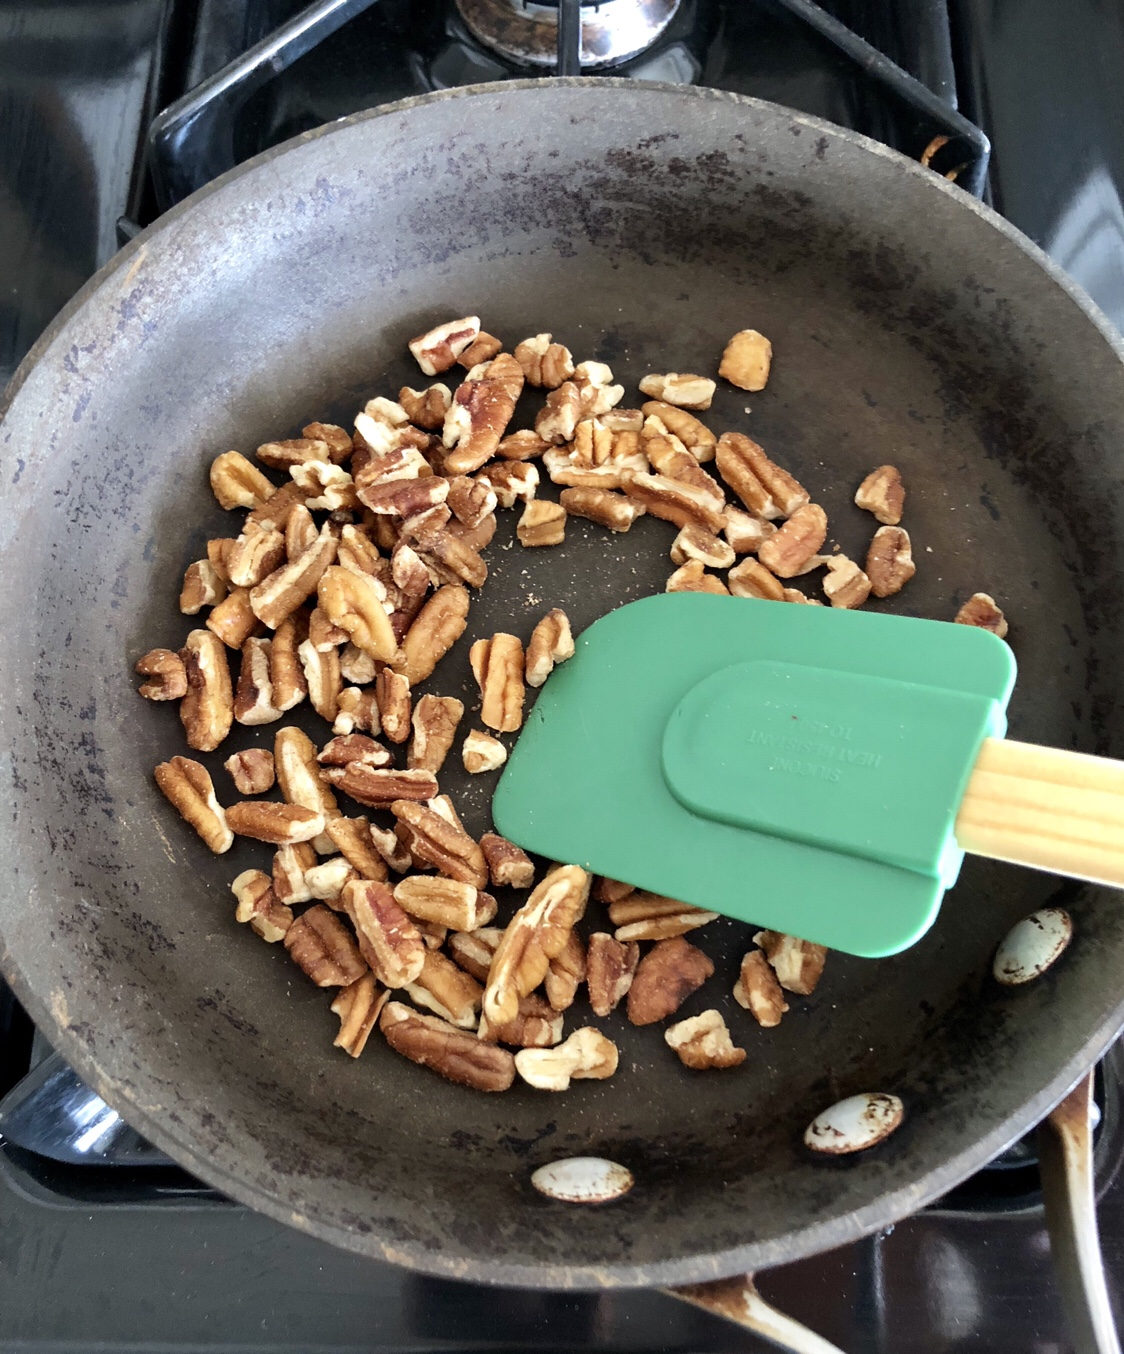 Add the pecans to a pan and cook over medium heat for 4-5 minutes.